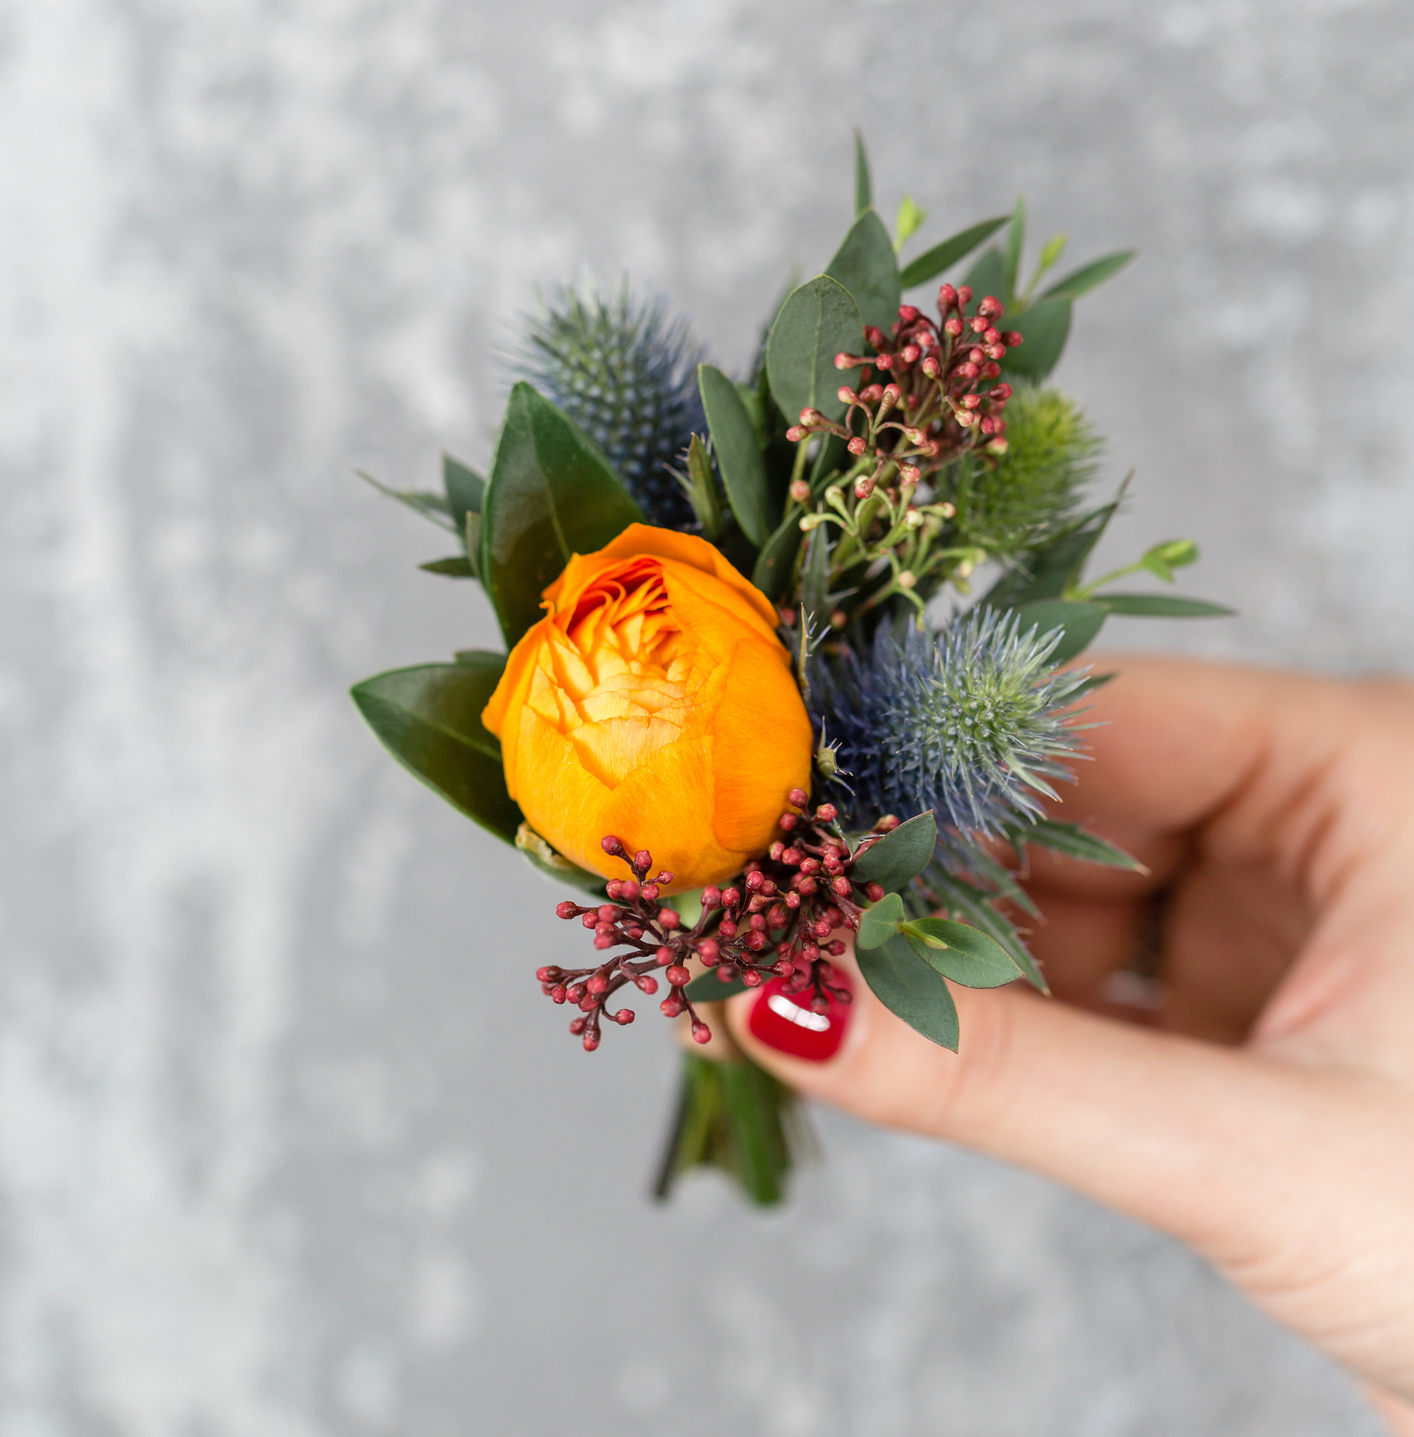 How To Make A Boutonniere For Prom In 4 Easy Steps Hellogiggles